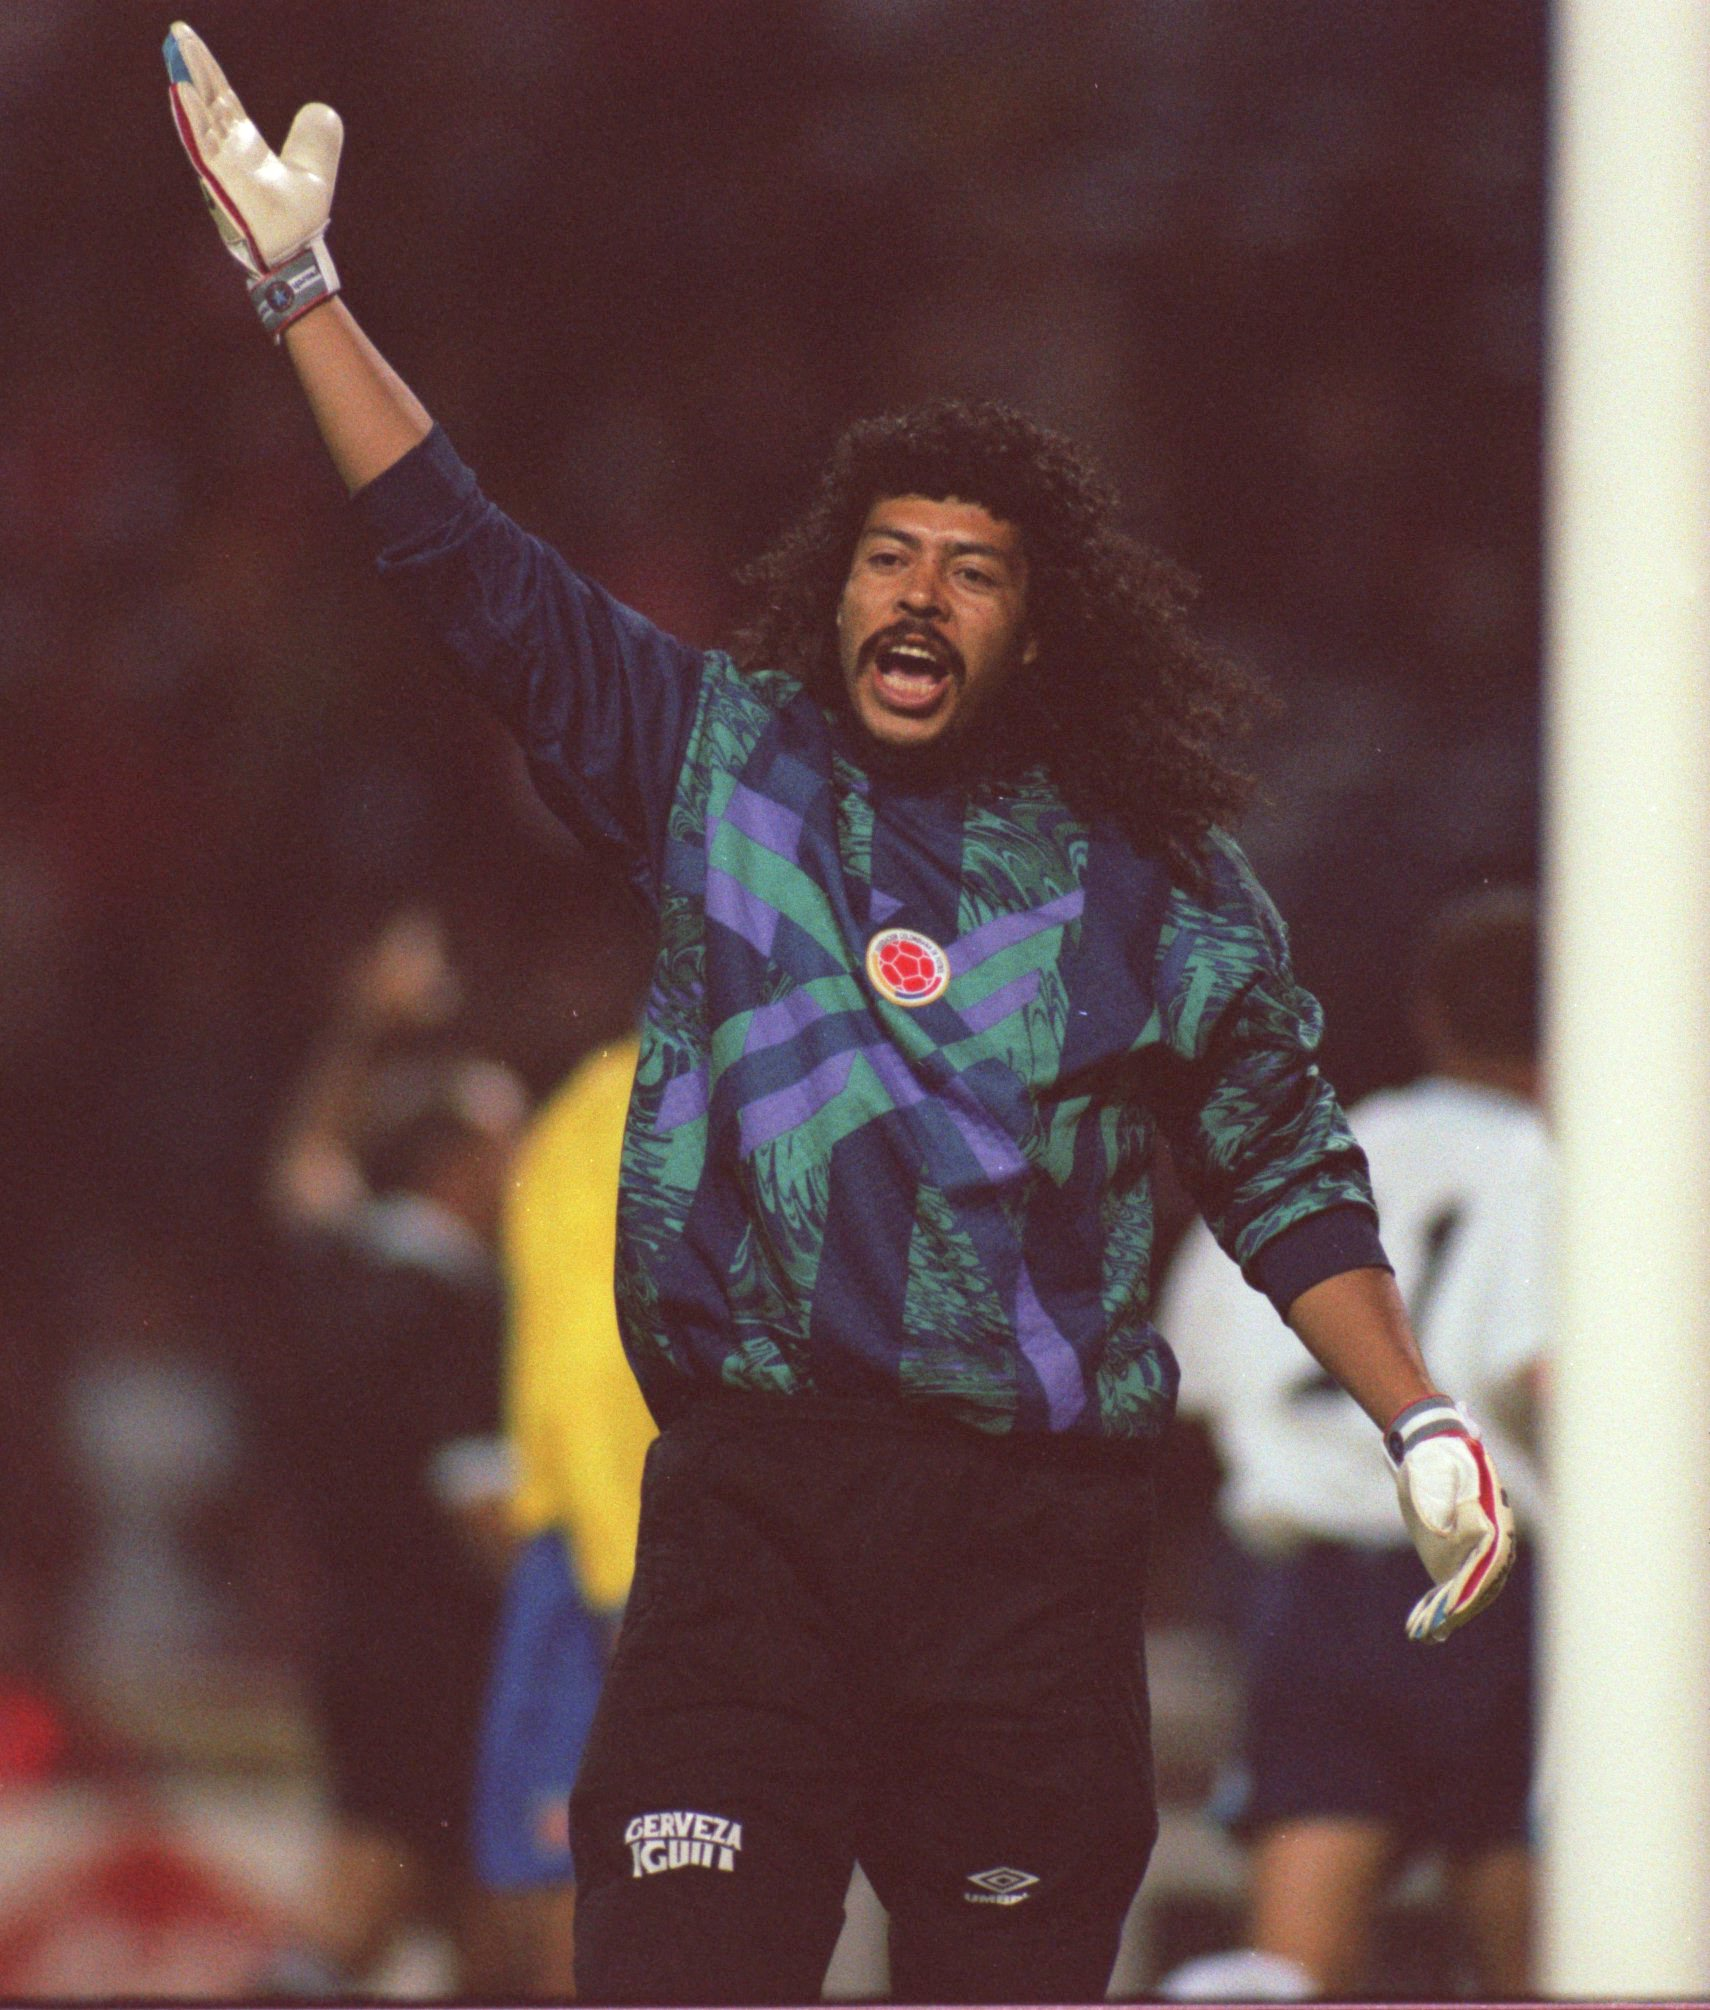 Colombian goalkeeper Réne Higuita during a 1995 match at Wembley Stadium in London. In the early 1990s, Higuita played at the private prison Pablo Escobar built for himself in Colombia. Check out his famous scorpion kick by clicking on the photo above. Photo by Mark Thompson/ALLSPORT.